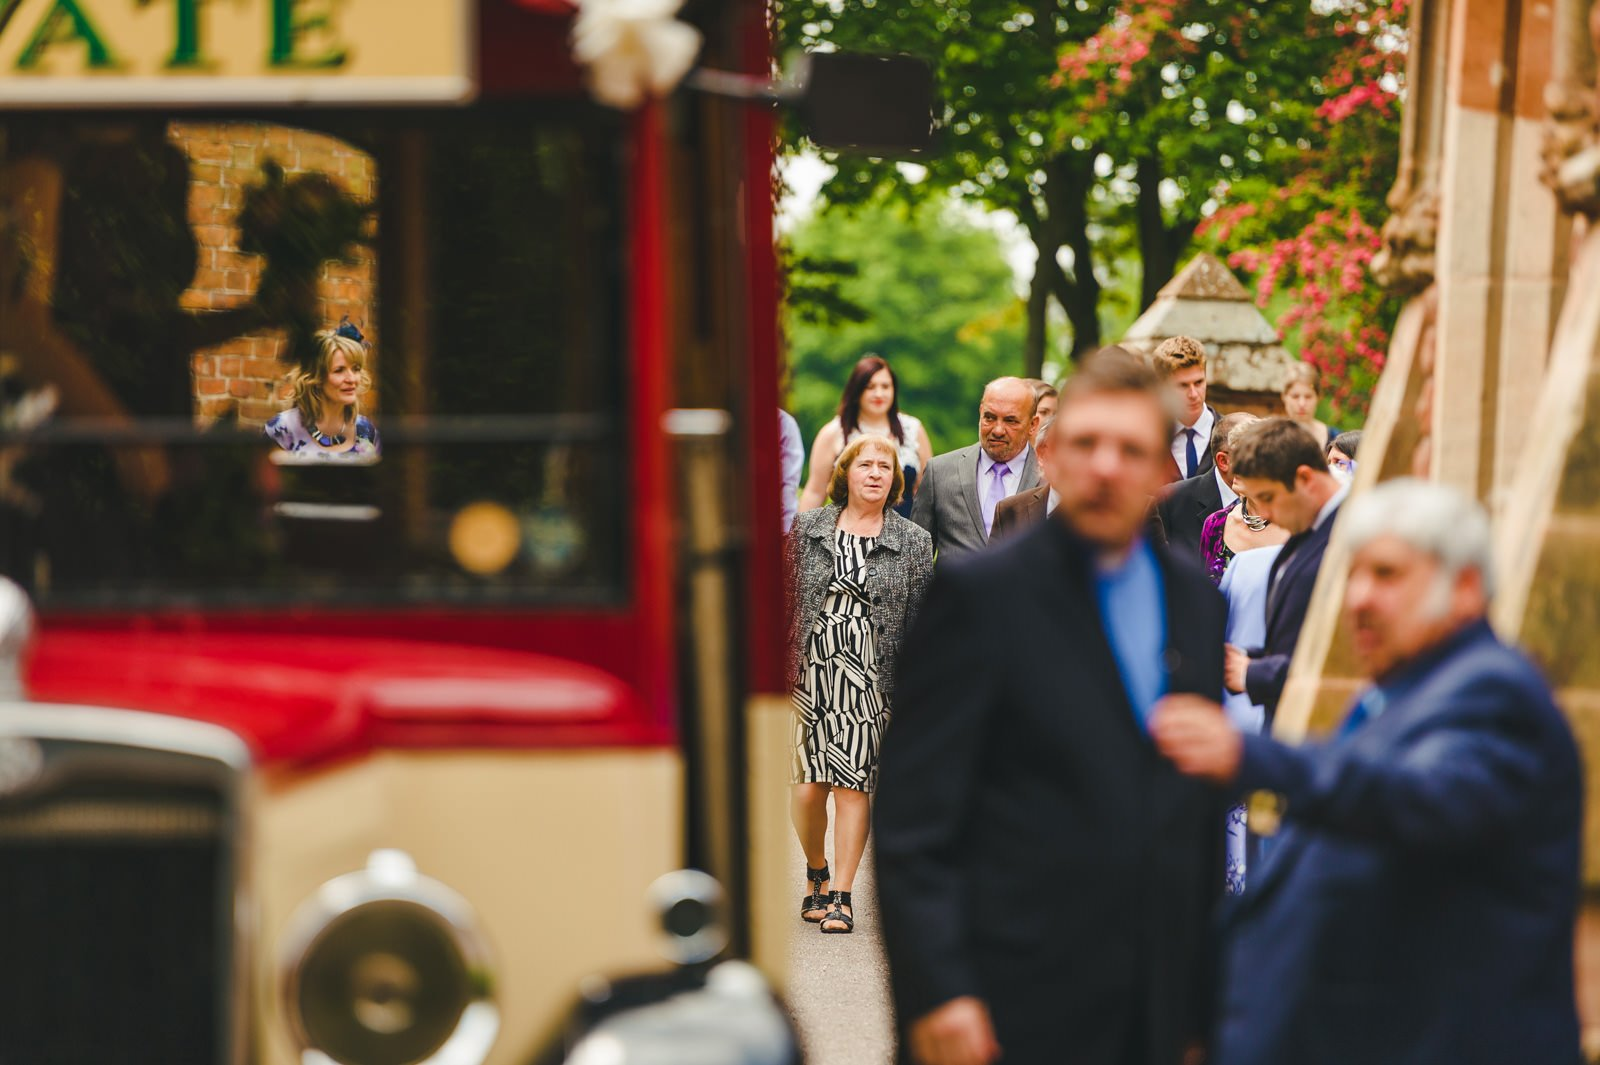 millers of netley wedding 19 - Millers Of Netley wedding, Dorrington, Shrewsbury | Emma + Ben